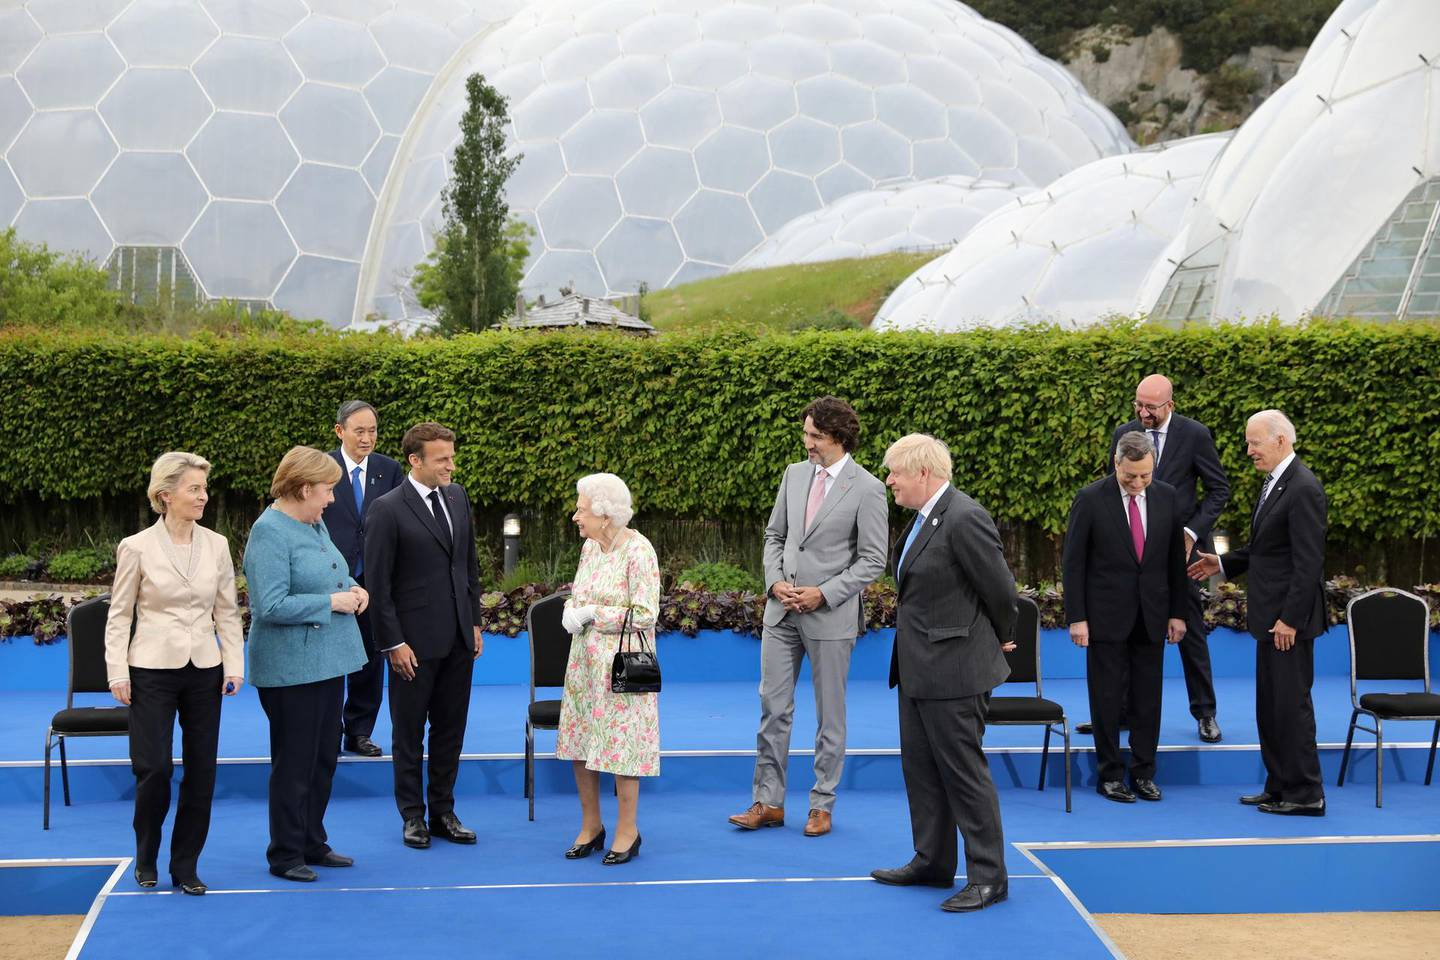 European Commission President Ursula von der Leyen, German Chancellor Angela Merkel, Japan's Prime Minister Yoshihide Suga, France's President Emmanuel Macron with Britain's Queen Elizabeth, Canada's Prime Minister Justin Trudeau,  Britain's Prime Minister Boris Johnson, Italy's Prime Minister Mario Draghi, U.S. President Joe Biden and European Council President Charles Michel prepare for a group photo during a drinks reception on the sidelines of the G7 summit, at the Eden Project in Cornwall, Britain June 11, 2021. Jack Hill/Pool via REUTERS